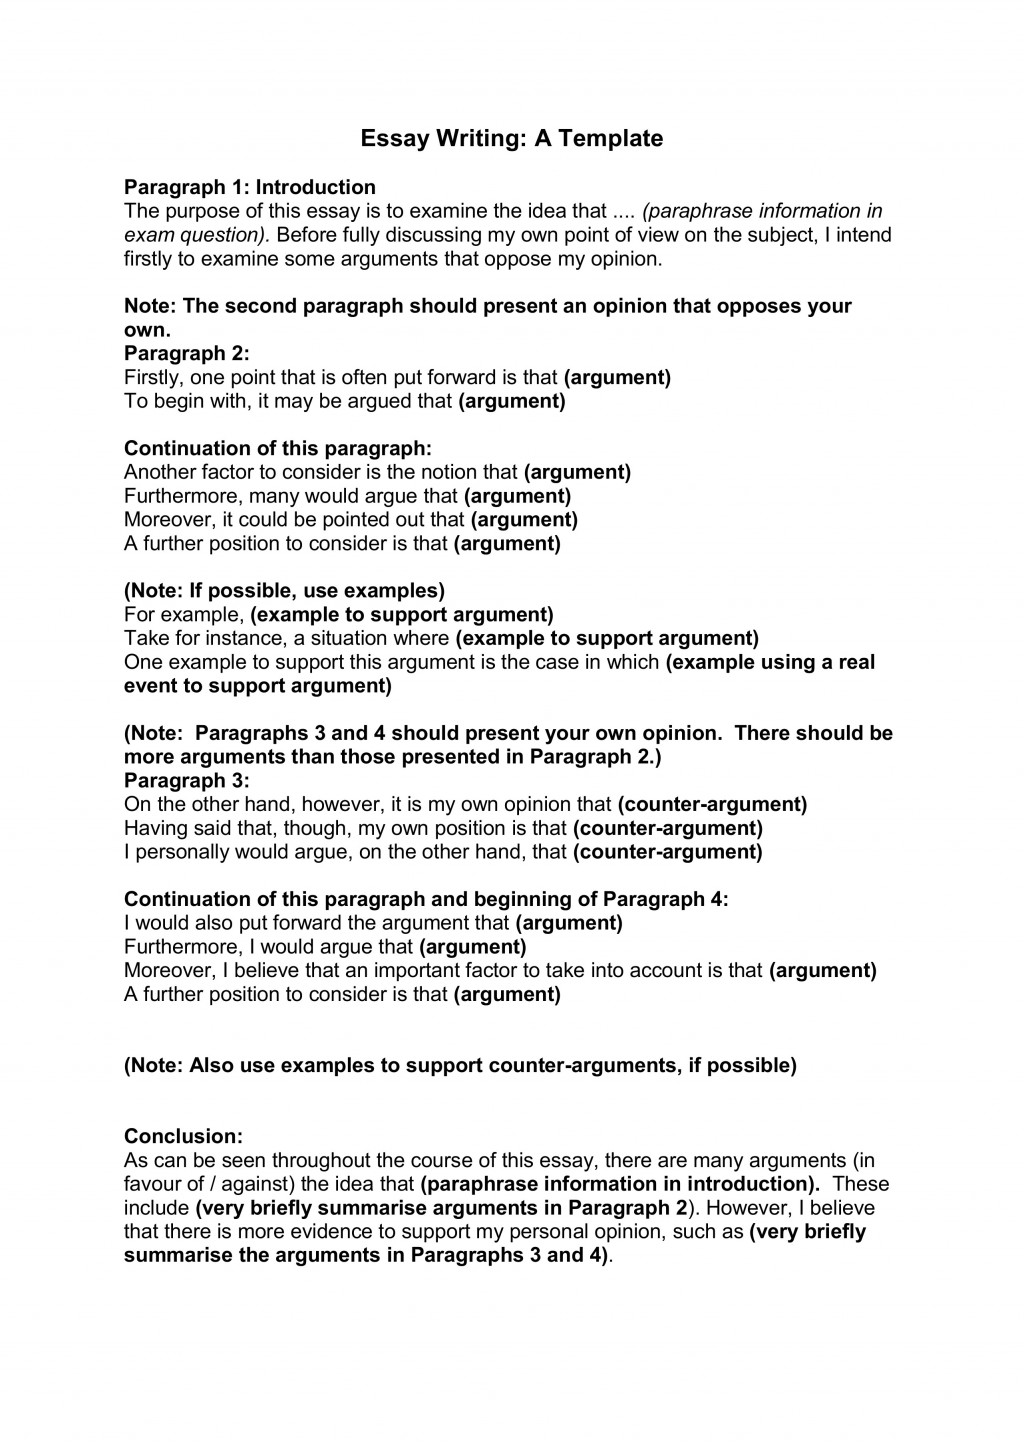 012 Essay Writing Template For Part 2cbu003d Research Paper Order Striking Papers Large